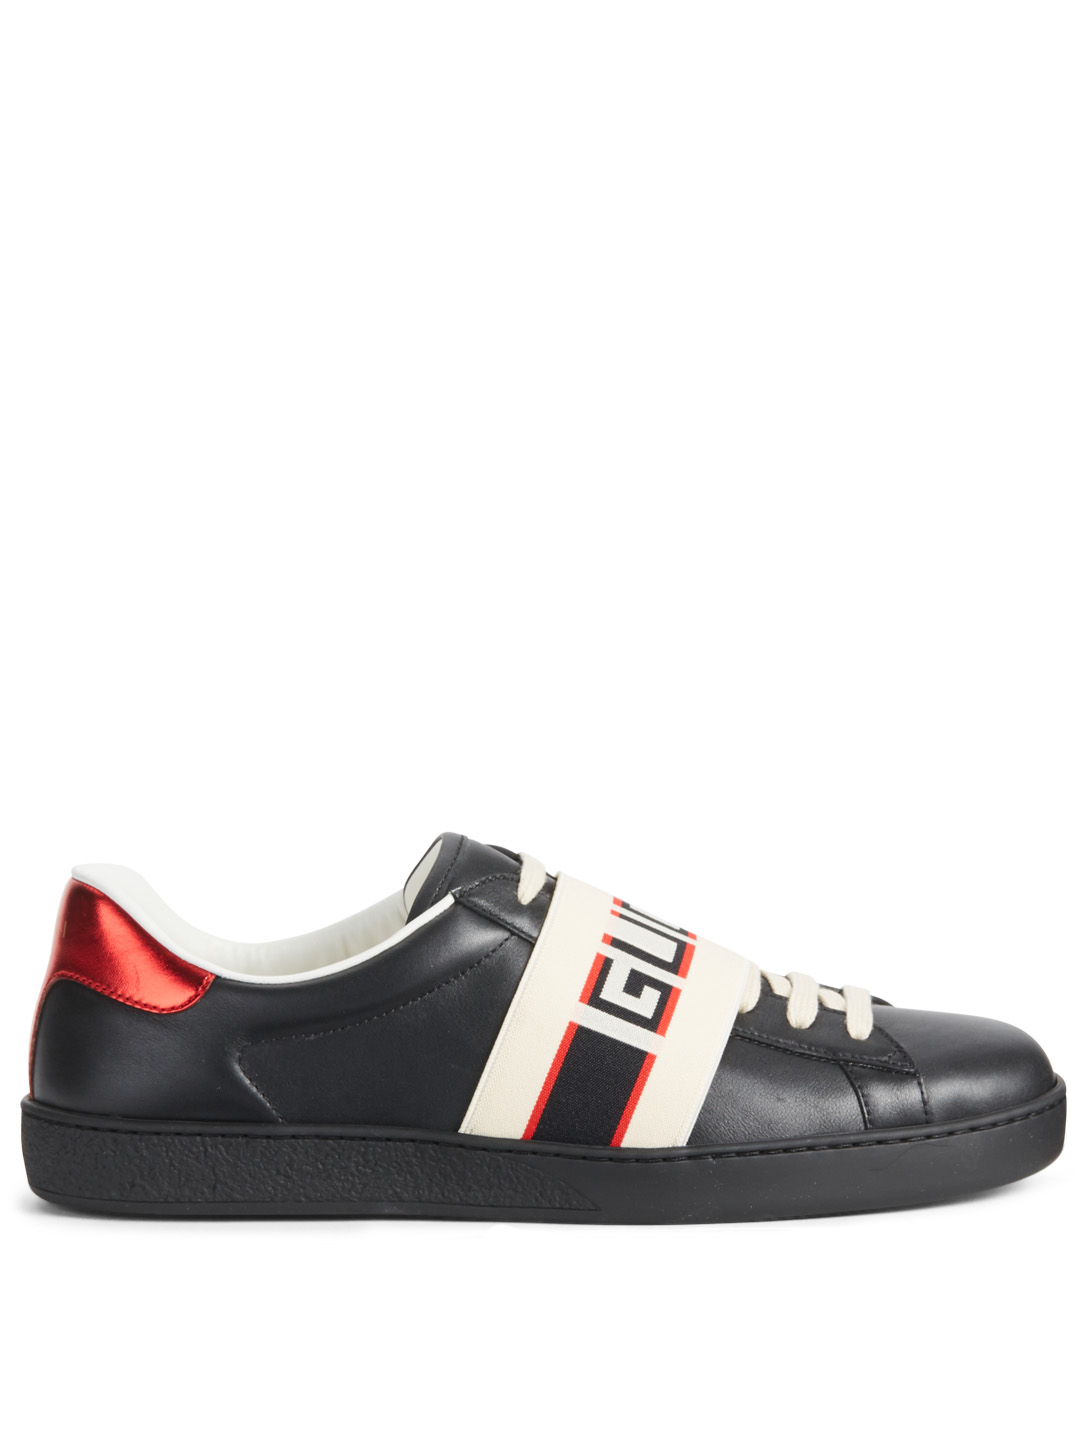 35d5068822c1e GUCCI New Ace Leather Sneakers With Logo Stripe Men s Black ...